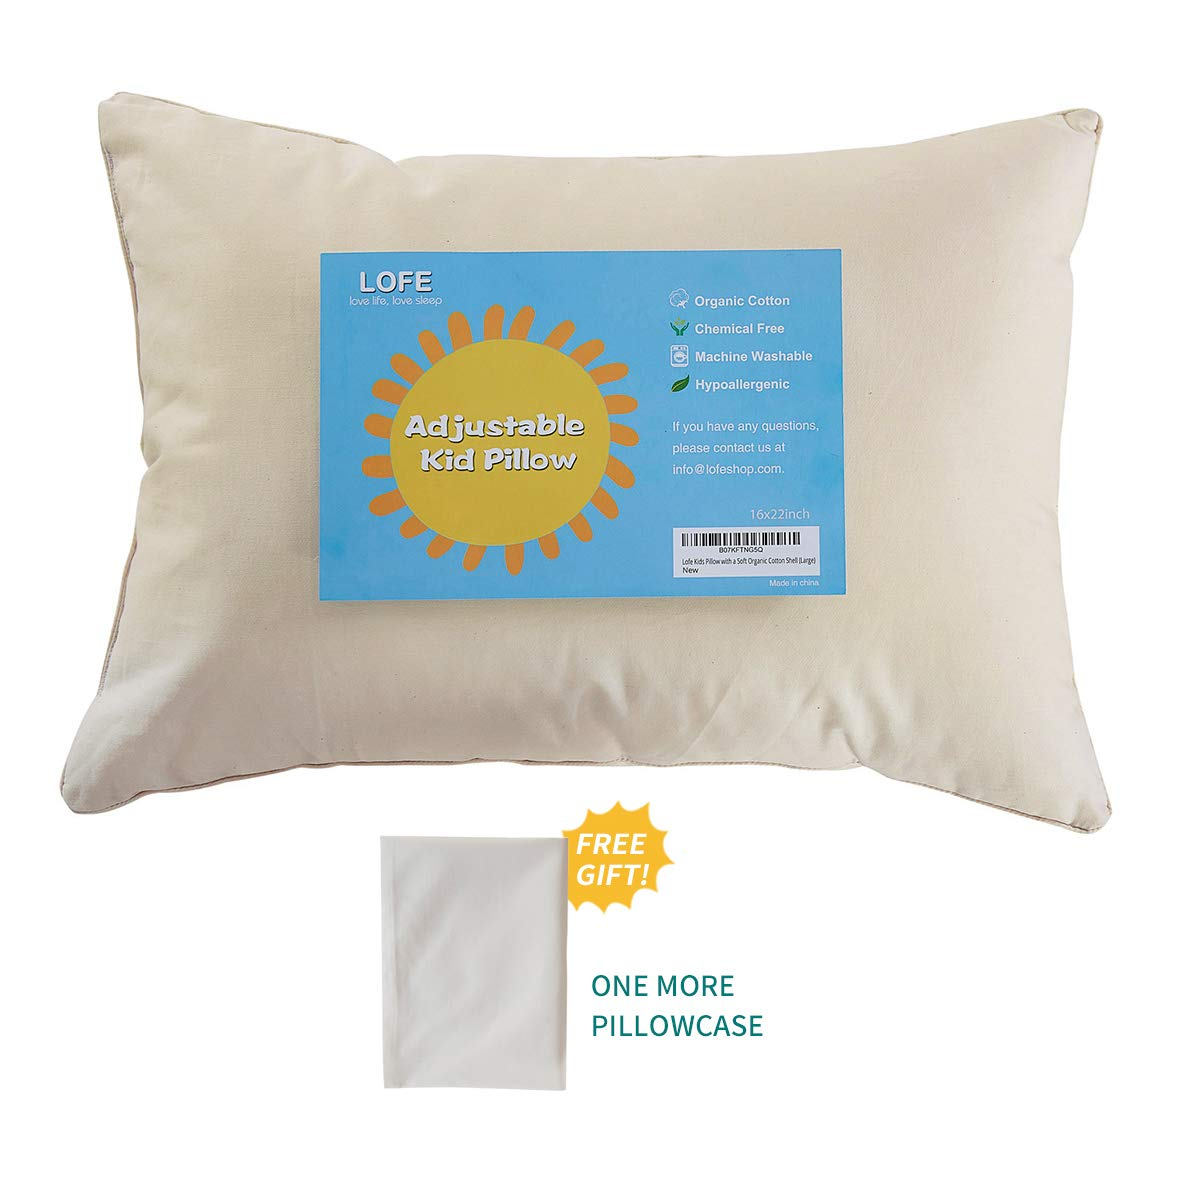 Lofe Toddler Pillow with Pillowcase, Organic Cotton Shell with Zipper, Adjustable Loft 13x18, Natural Un-Bleached Tan by Lofe